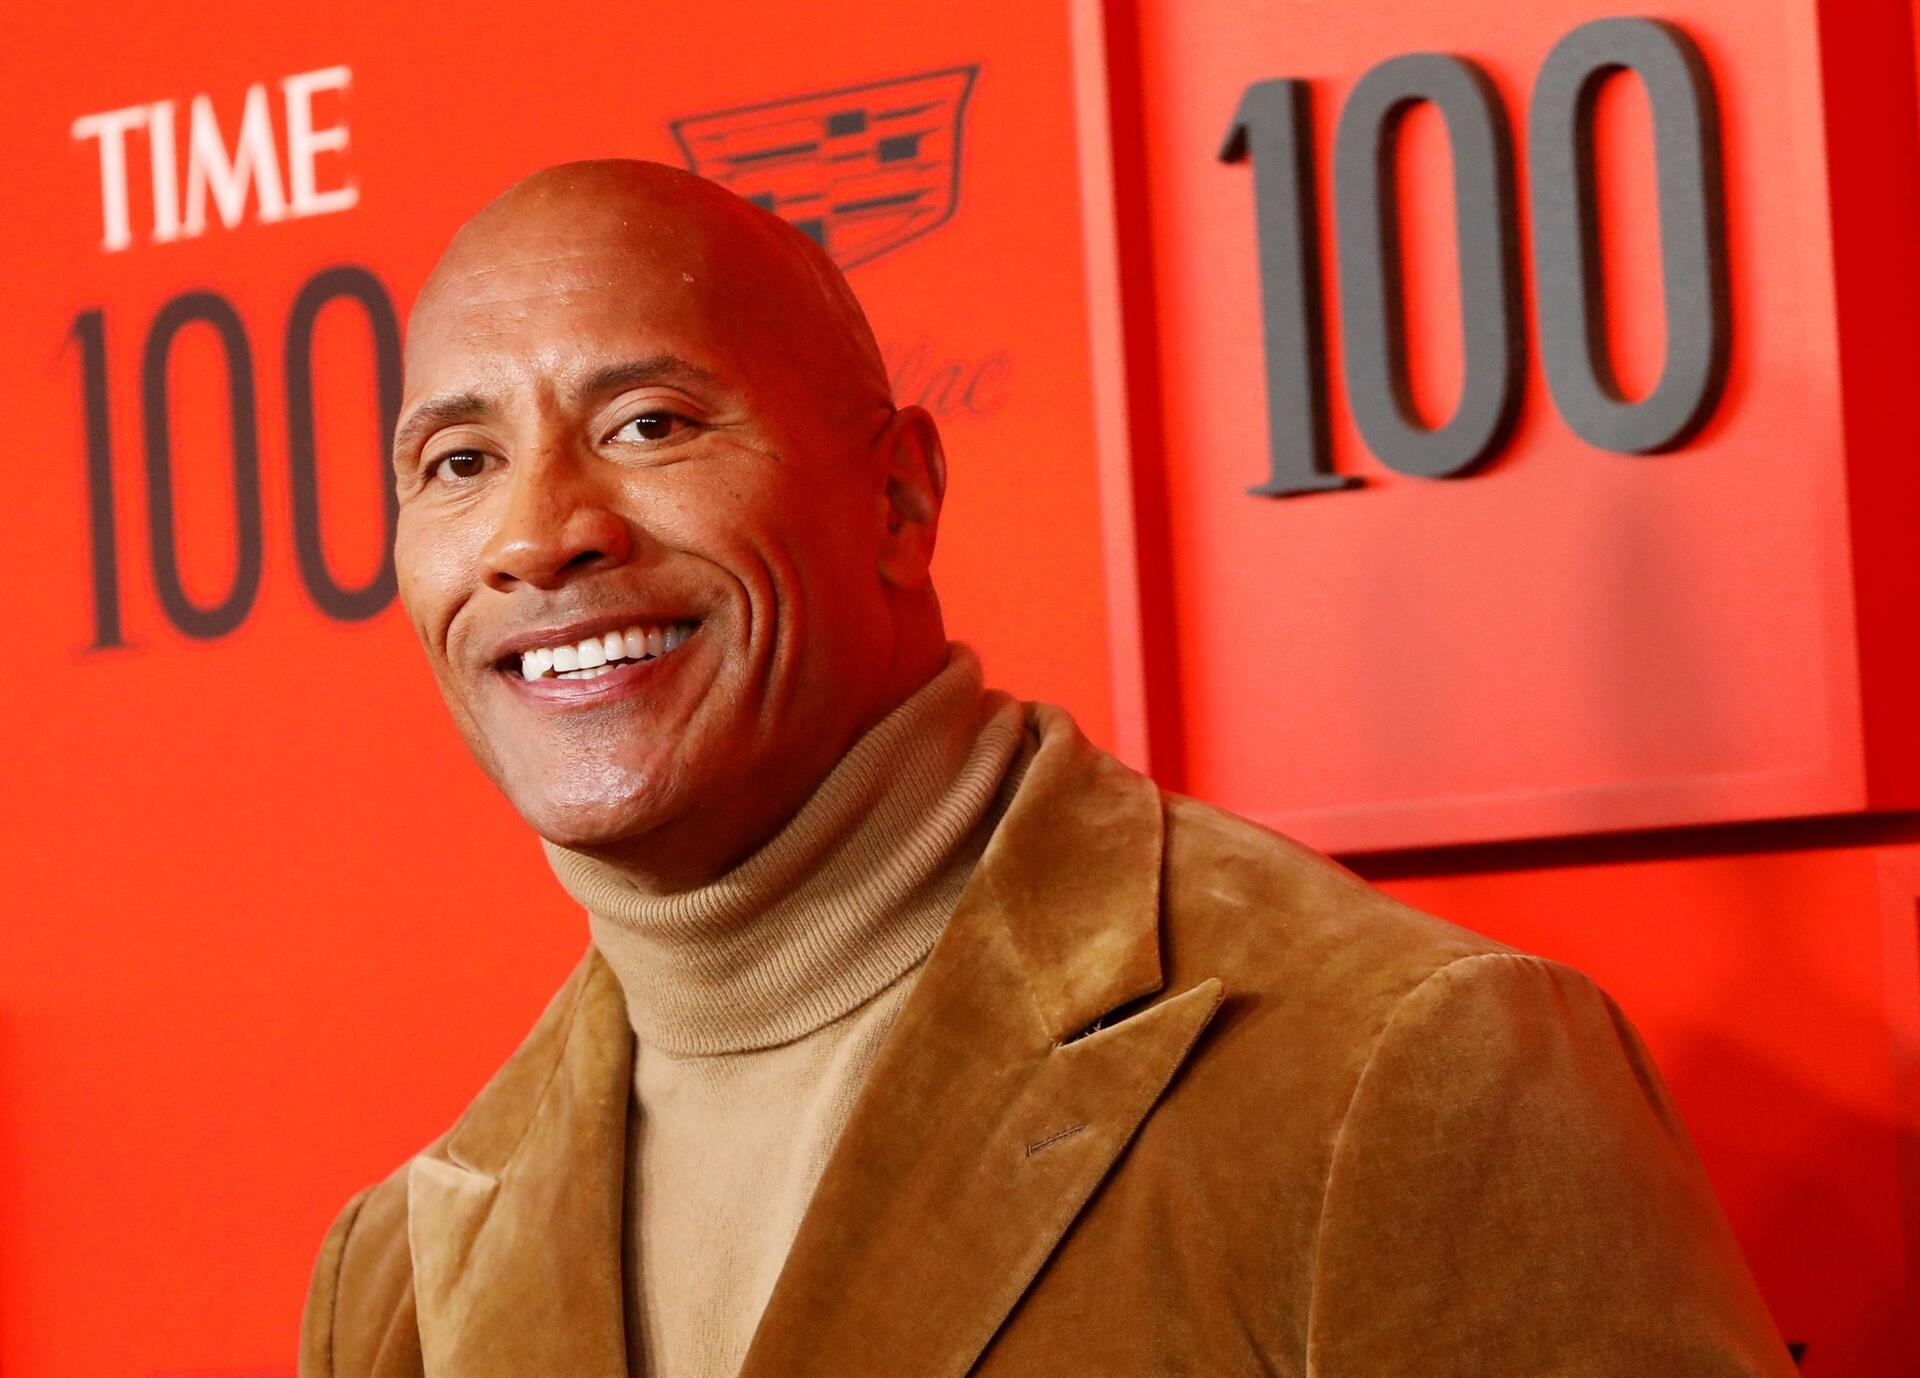 Dwayne Johnson Is Hollywood's Highest-Paid Actor for Second Year in a Row